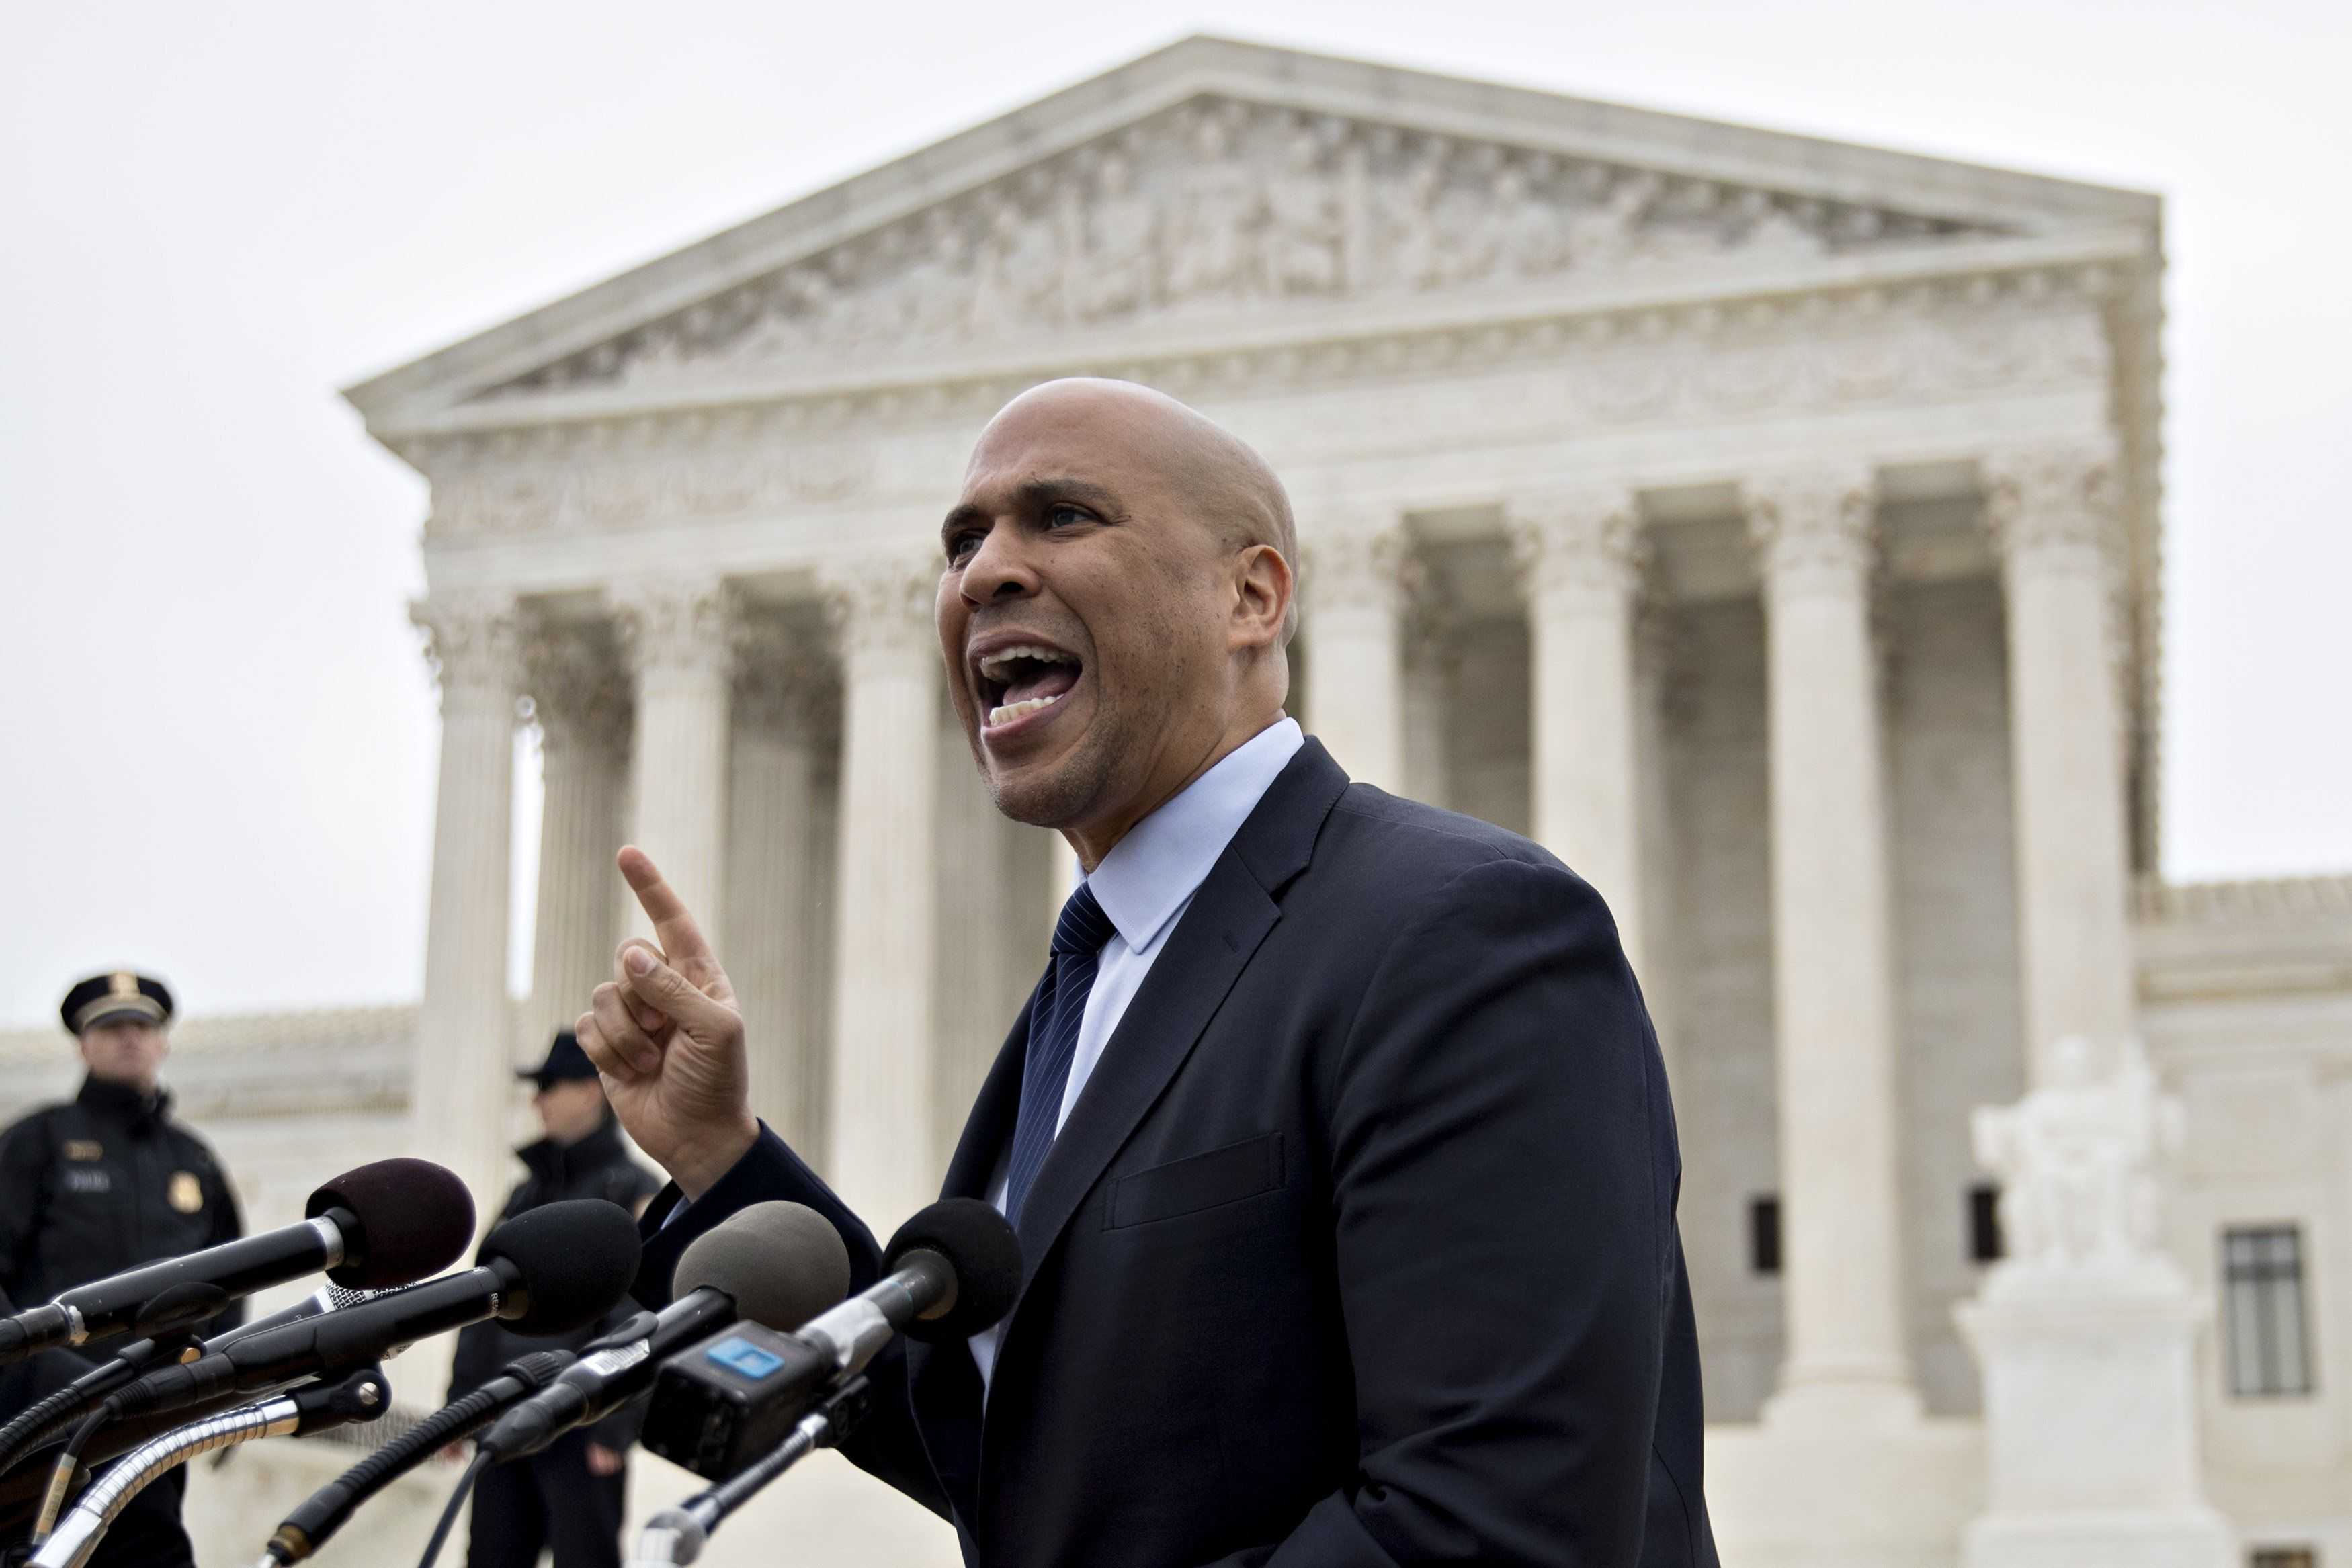 Senator Cory Booker, a Democrat from New Jersey, speaks to demonstrators in support of David Mullins and husband Charlie Craig outside the U.S. Supreme Court during arguments in the Masterpiece Cakeshop v. Colorado Civil Rights Commission case in Washington, D.C., U.S., on Tuesday, Dec. 5, 2017. Mullins and Craig filed a civil rights complaint to the Colorado Civil Rights Commission after Masterpiece Cakeshop owner Jack Phillips refused to make cakes for same-sex weddings. Photographer: Andrew Harrer/Bloomberg via Getty Images